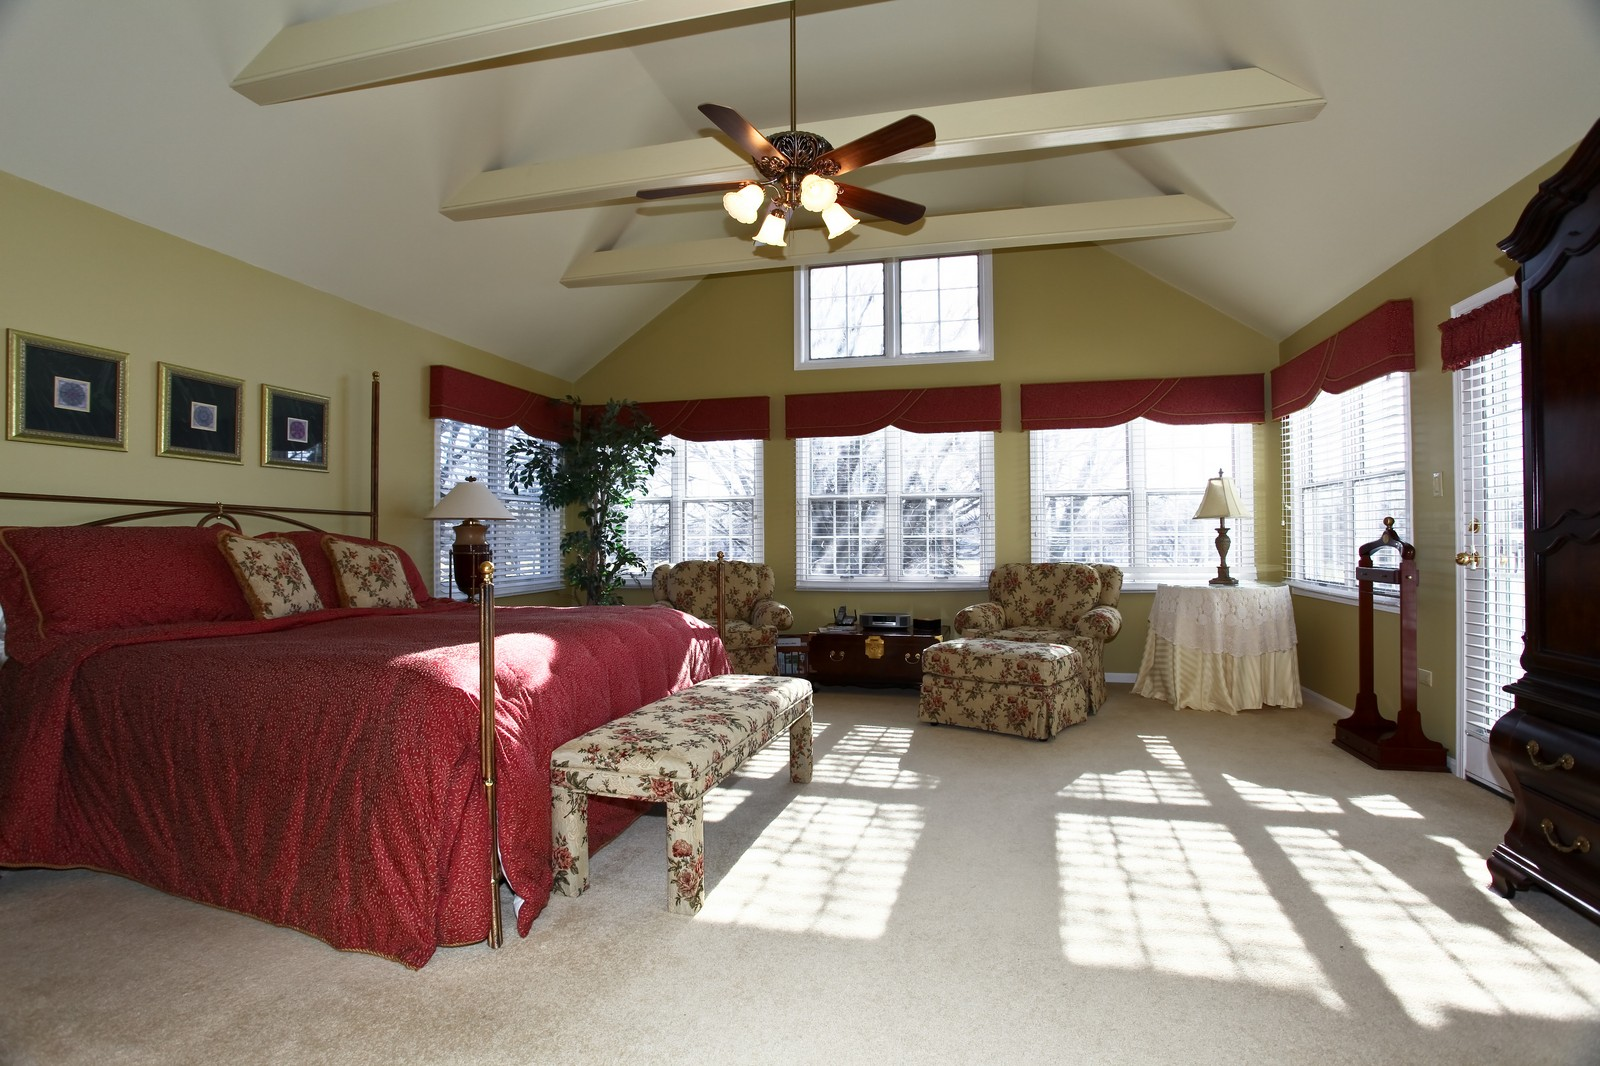 Real Estate Photography - 1032 Royal Bombay Court, Naperville, IL, 60563 - Master Bedroom